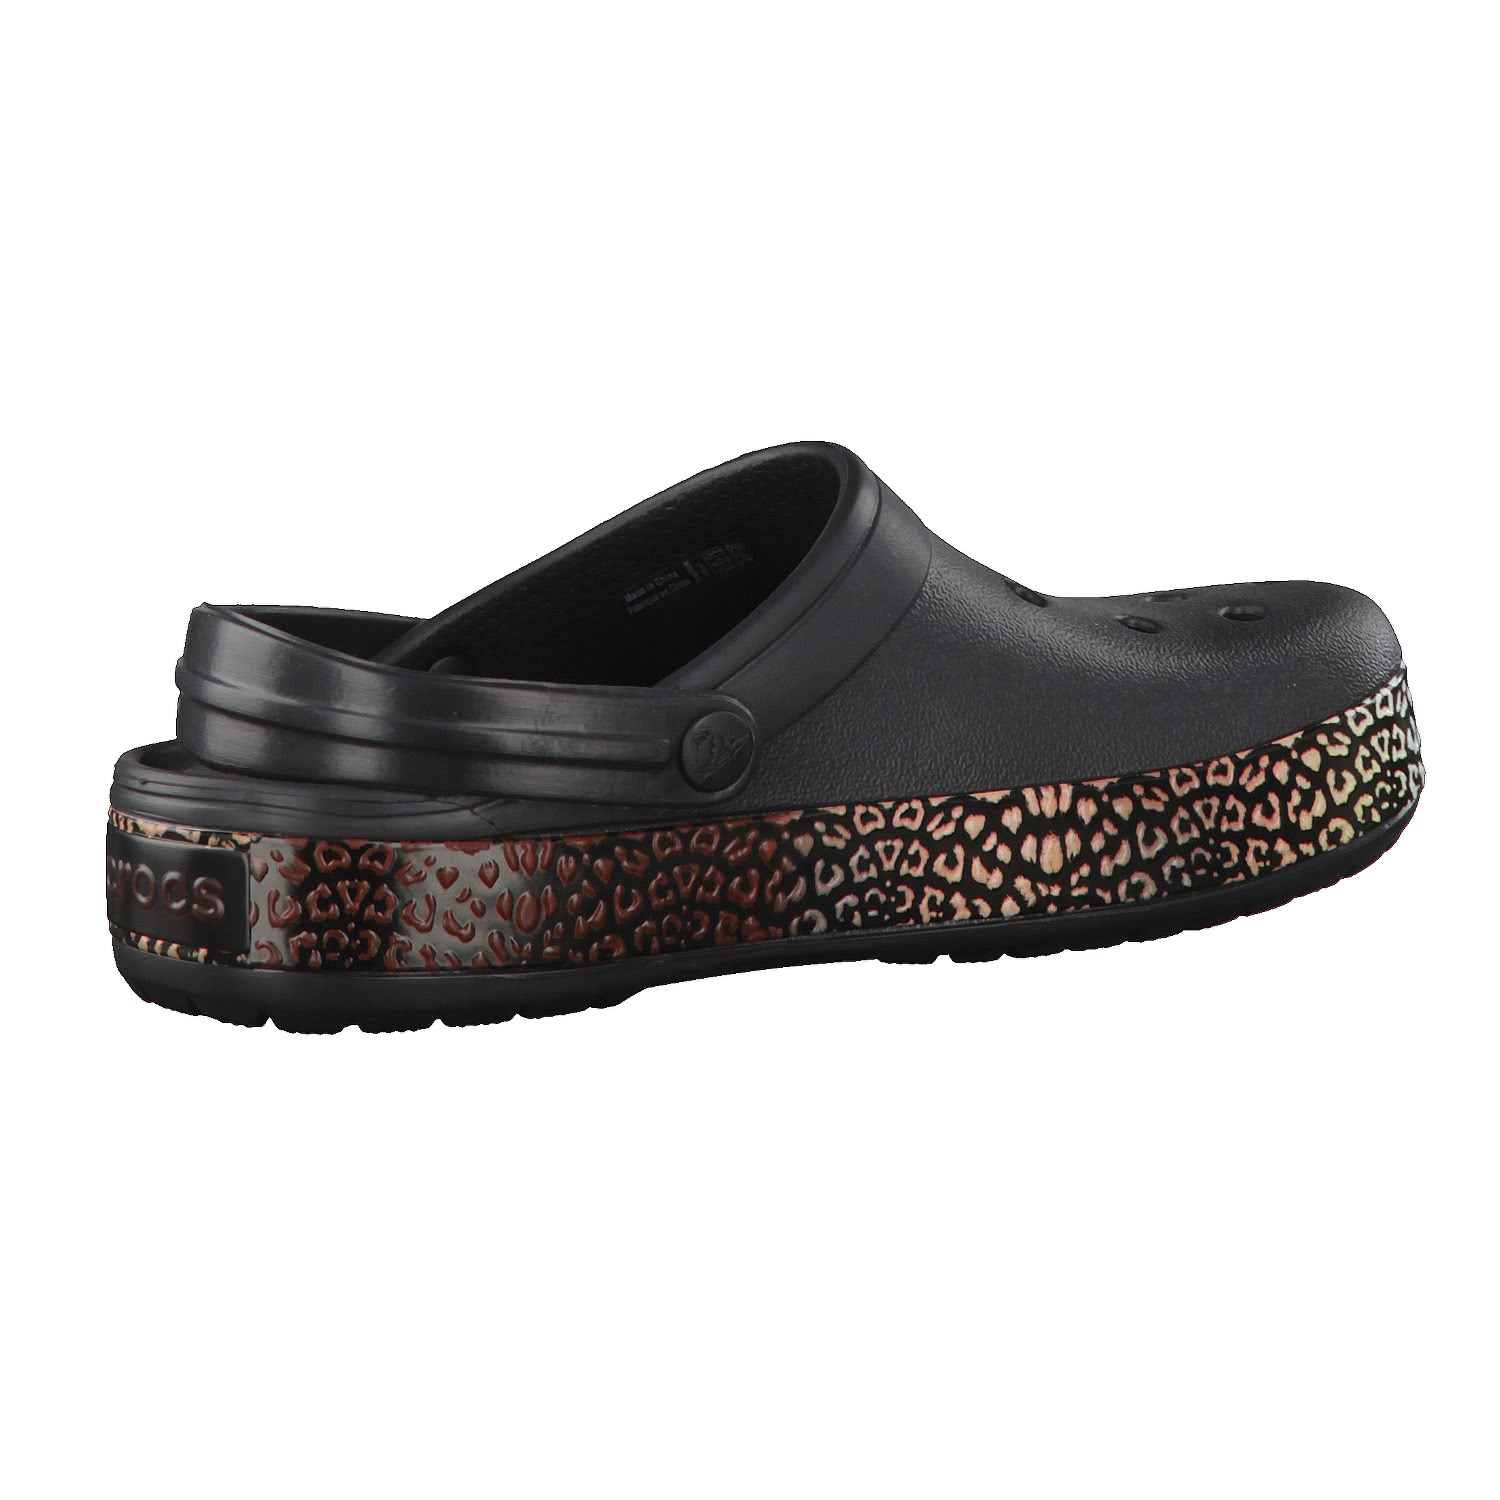 crocs damen schuhe crocband leopard iii clog 204649. Black Bedroom Furniture Sets. Home Design Ideas